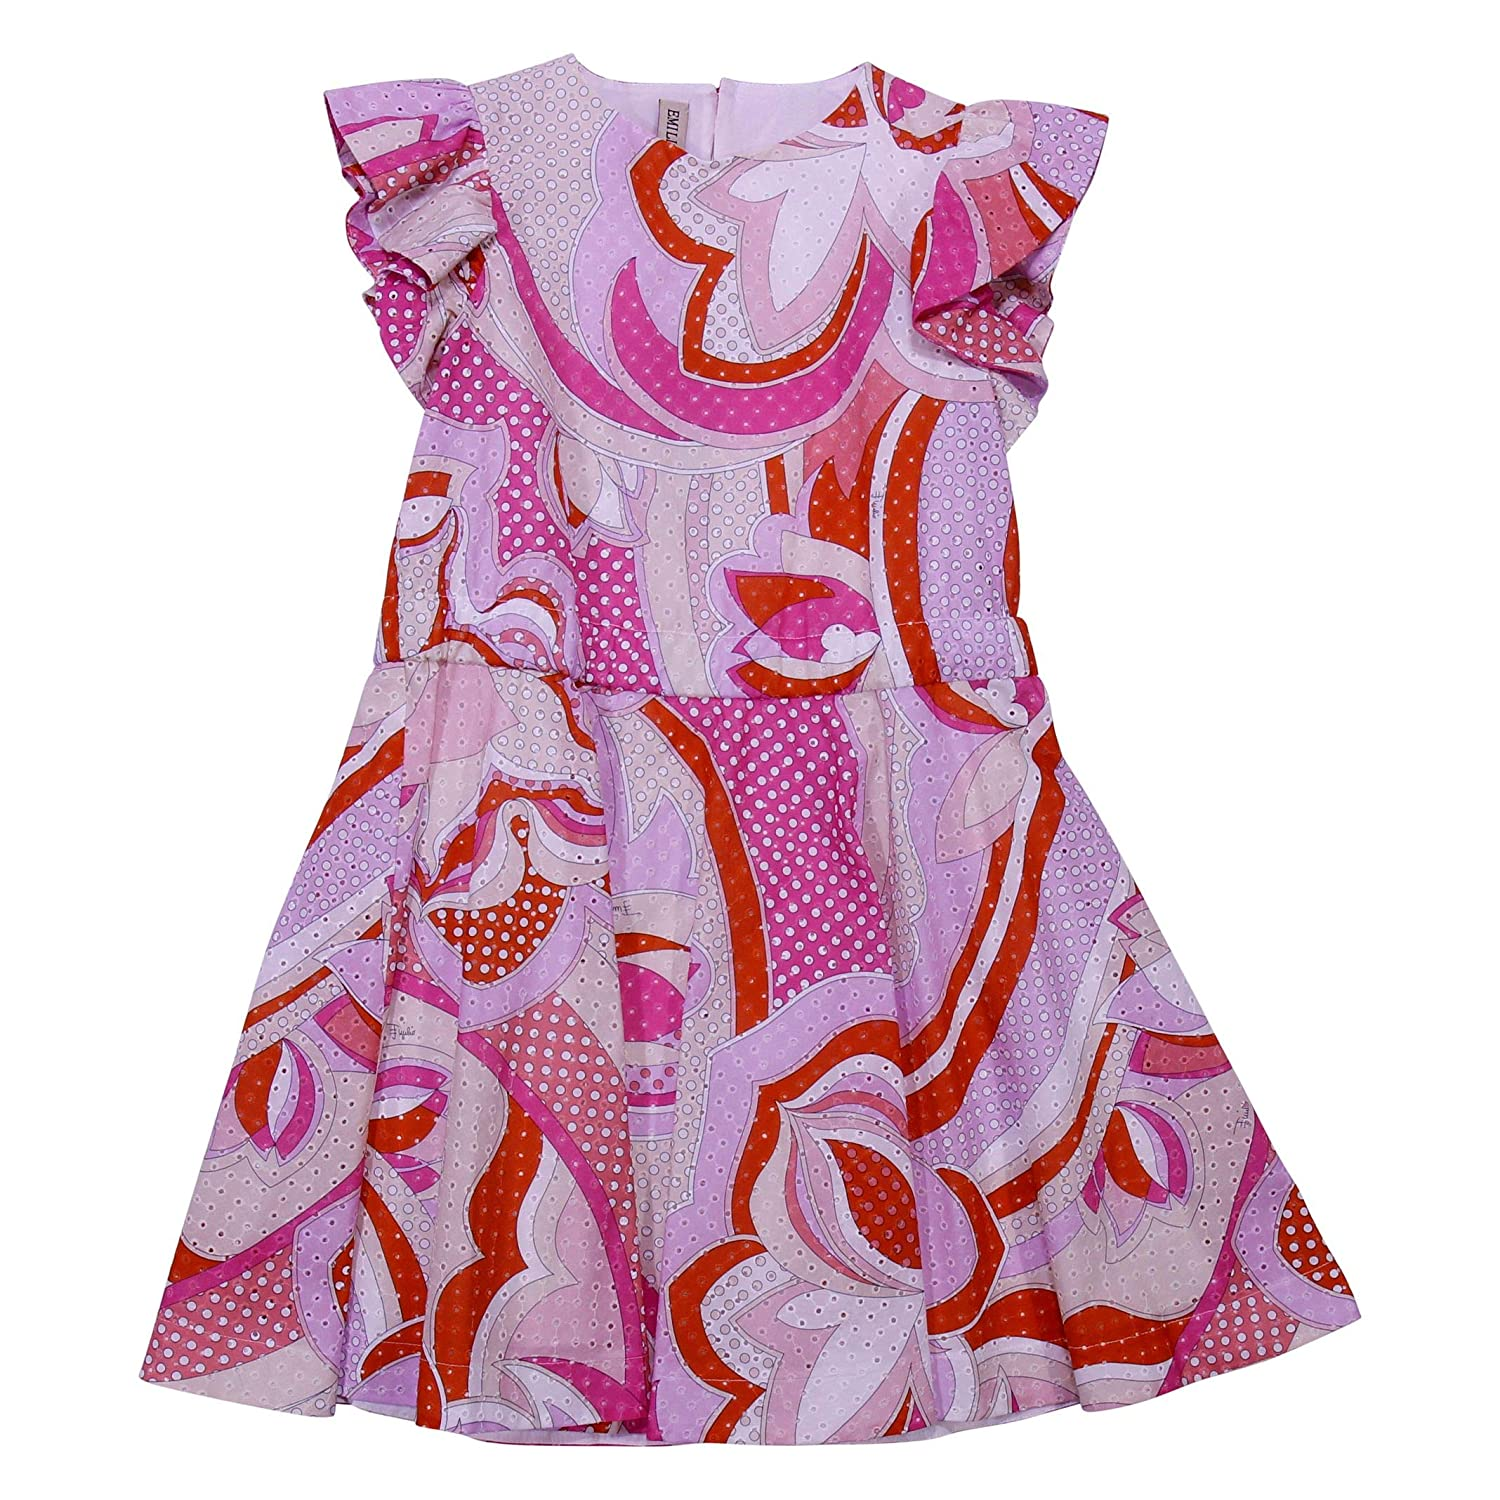 Taille Fabricant 6yrs Emilio Pucci Fille 9K1091KB170513AR Rose Coton Robe